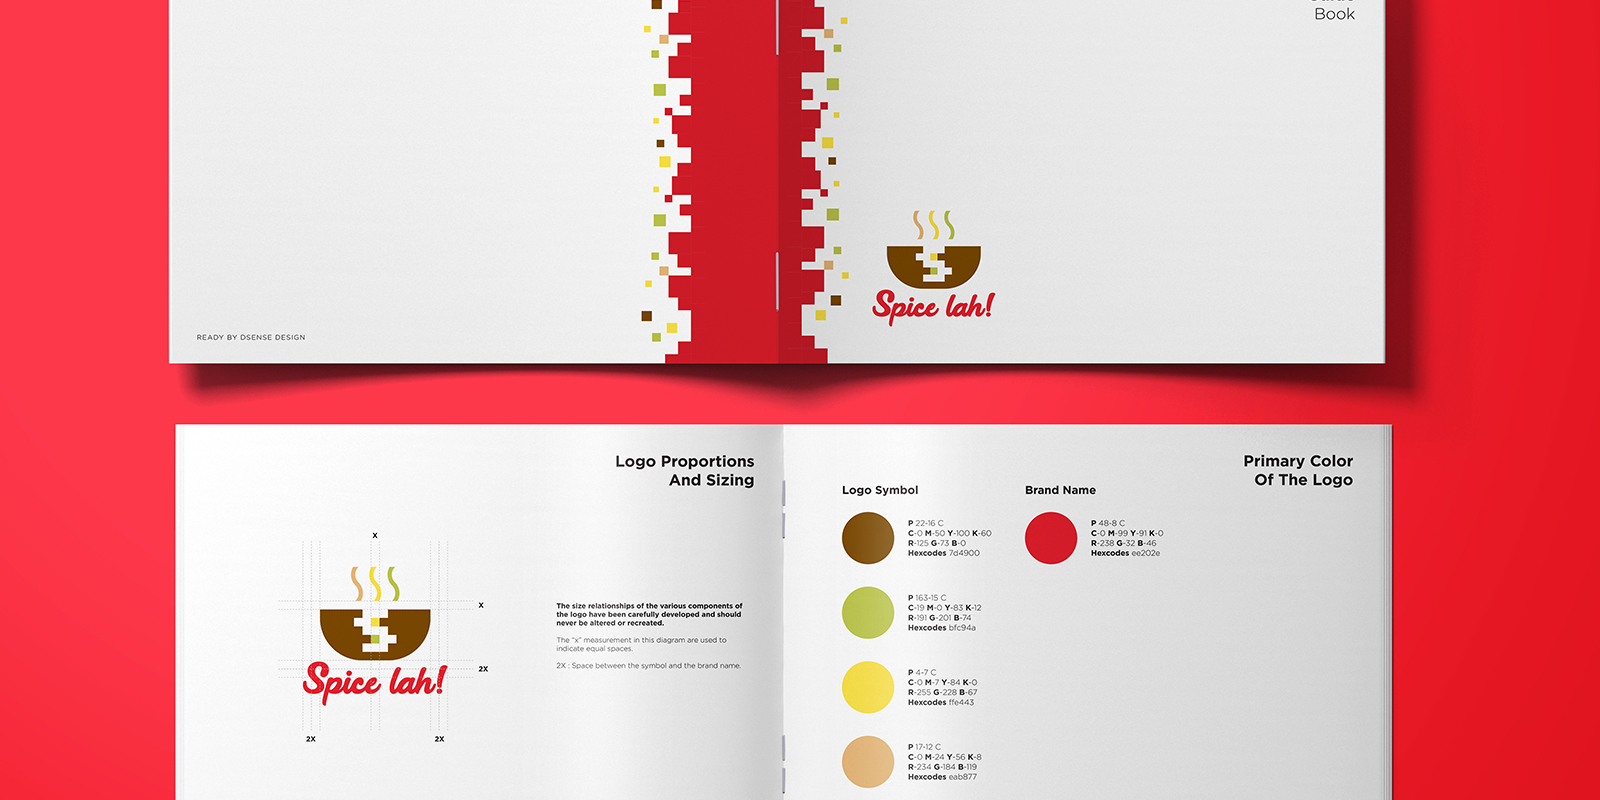 Spice lah! brand guide